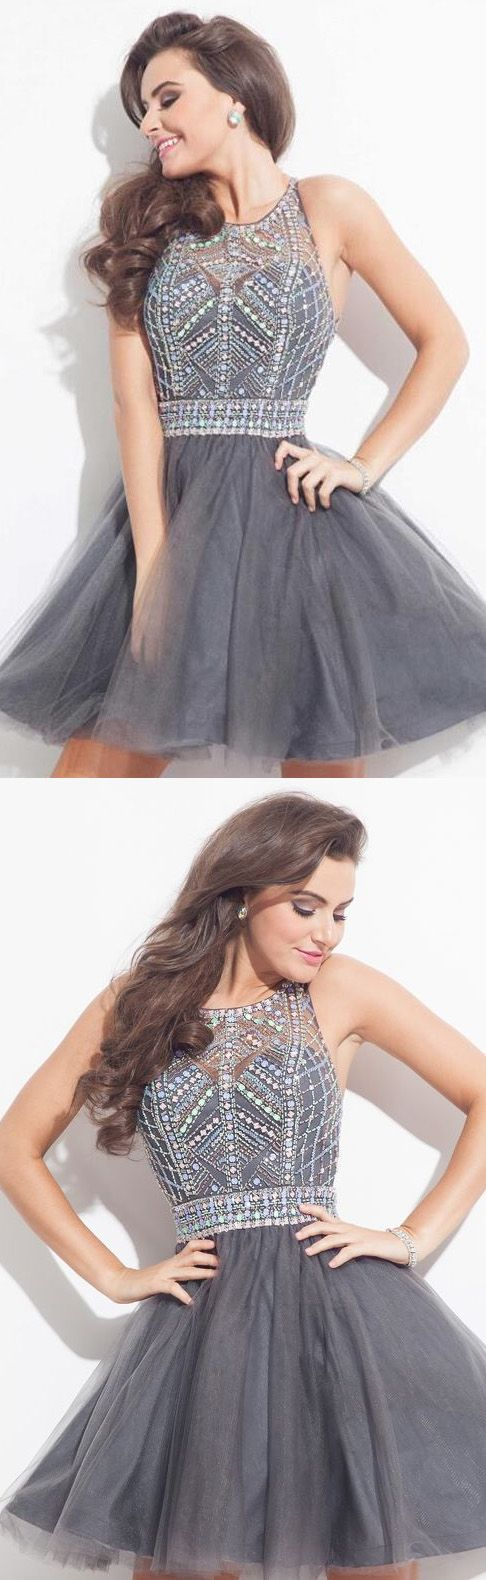 Cheap Prom Dresses, Short Prom Dresses, Prom Dresses Cheap, Cheap Short Prom Dresses, Prom Dresses Short, Short Prom Dresses Cheap, Short Homecoming Dresses, Online Prom Dresses, Prom dresses Sale, Cheap Homecoming Dresses, Homecoming Dresses Cheap, A-line/Princess Prom Dresses, Grey Homecoming Dresses, Short Grey Prom Dresses With Rhinestone Mini Bateau Sale Online